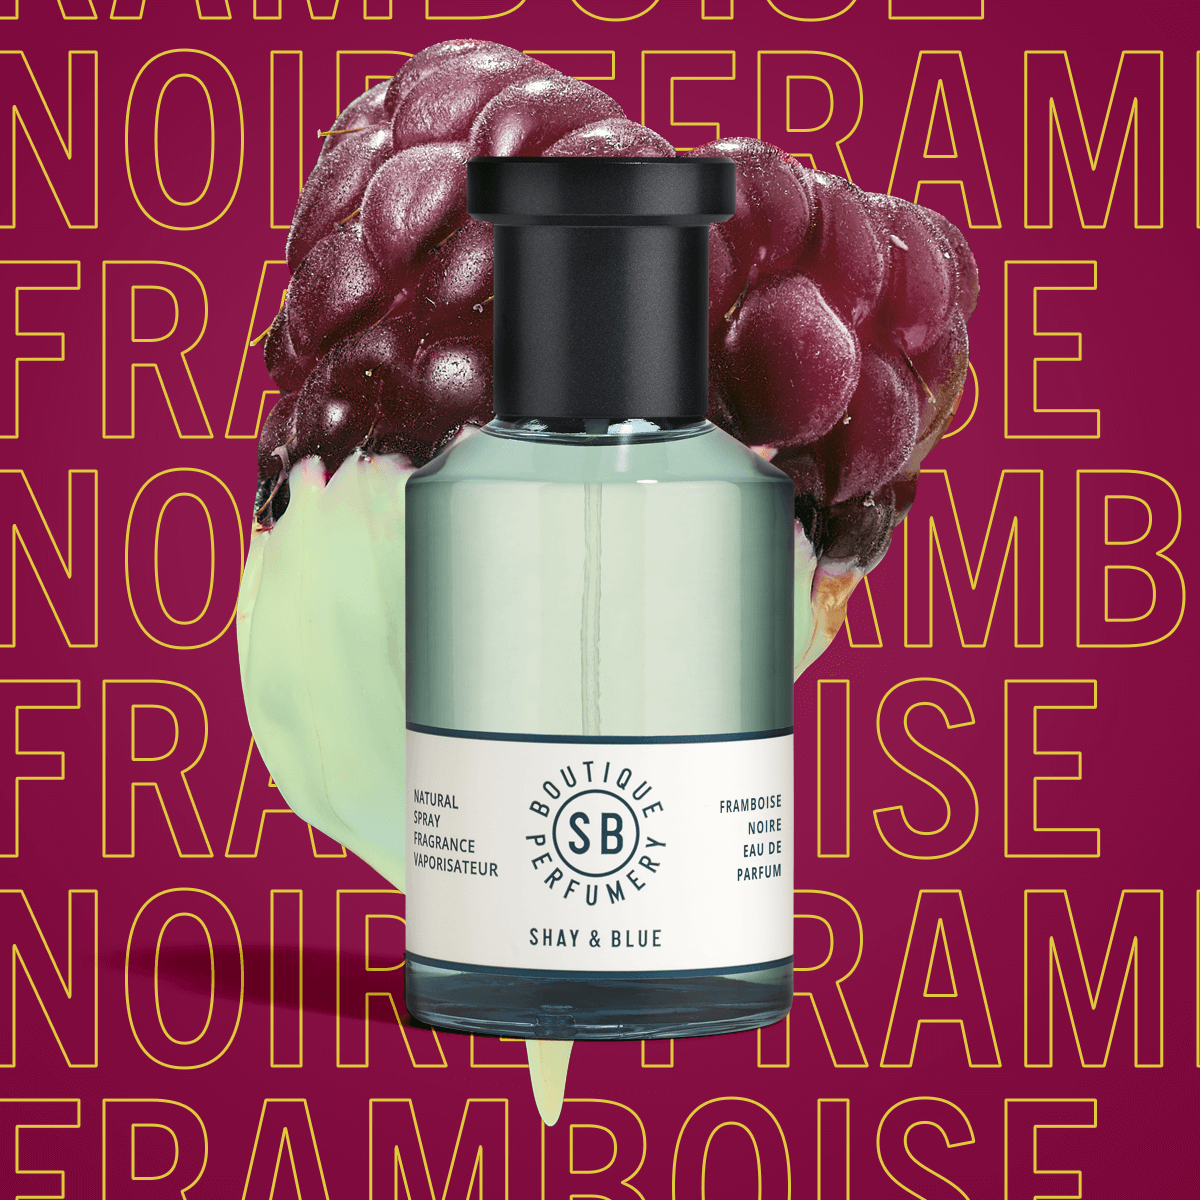 Framboise Noire Fragrance 100ml | Black raspberry and forest berries deepen with the heart of black wood. | Clean All Gender Fragrance | Shay & Blue